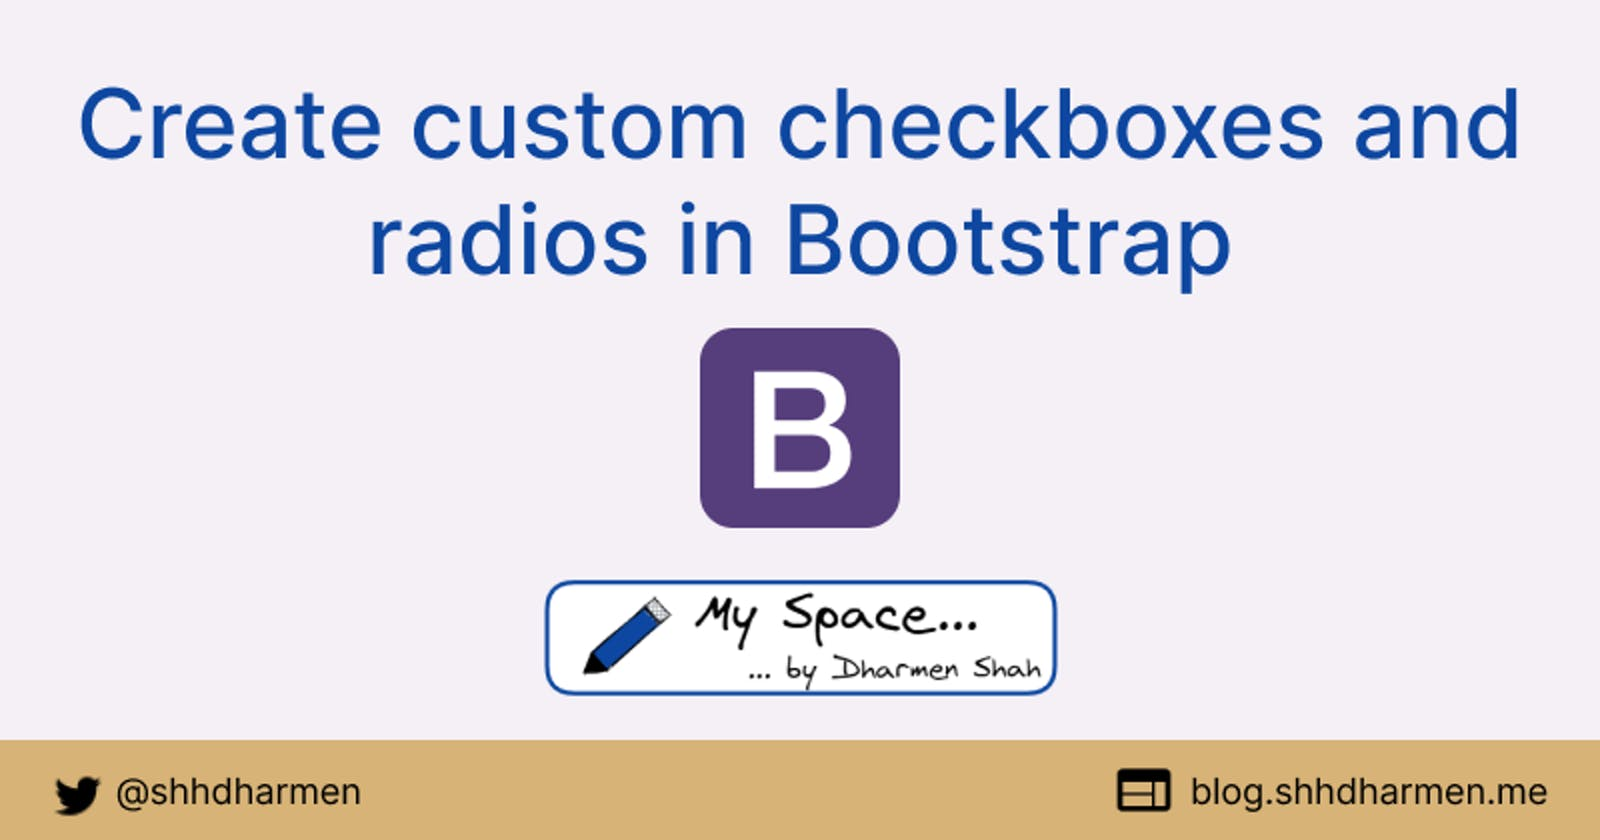 Create custom checkboxes and radios in Bootstrap